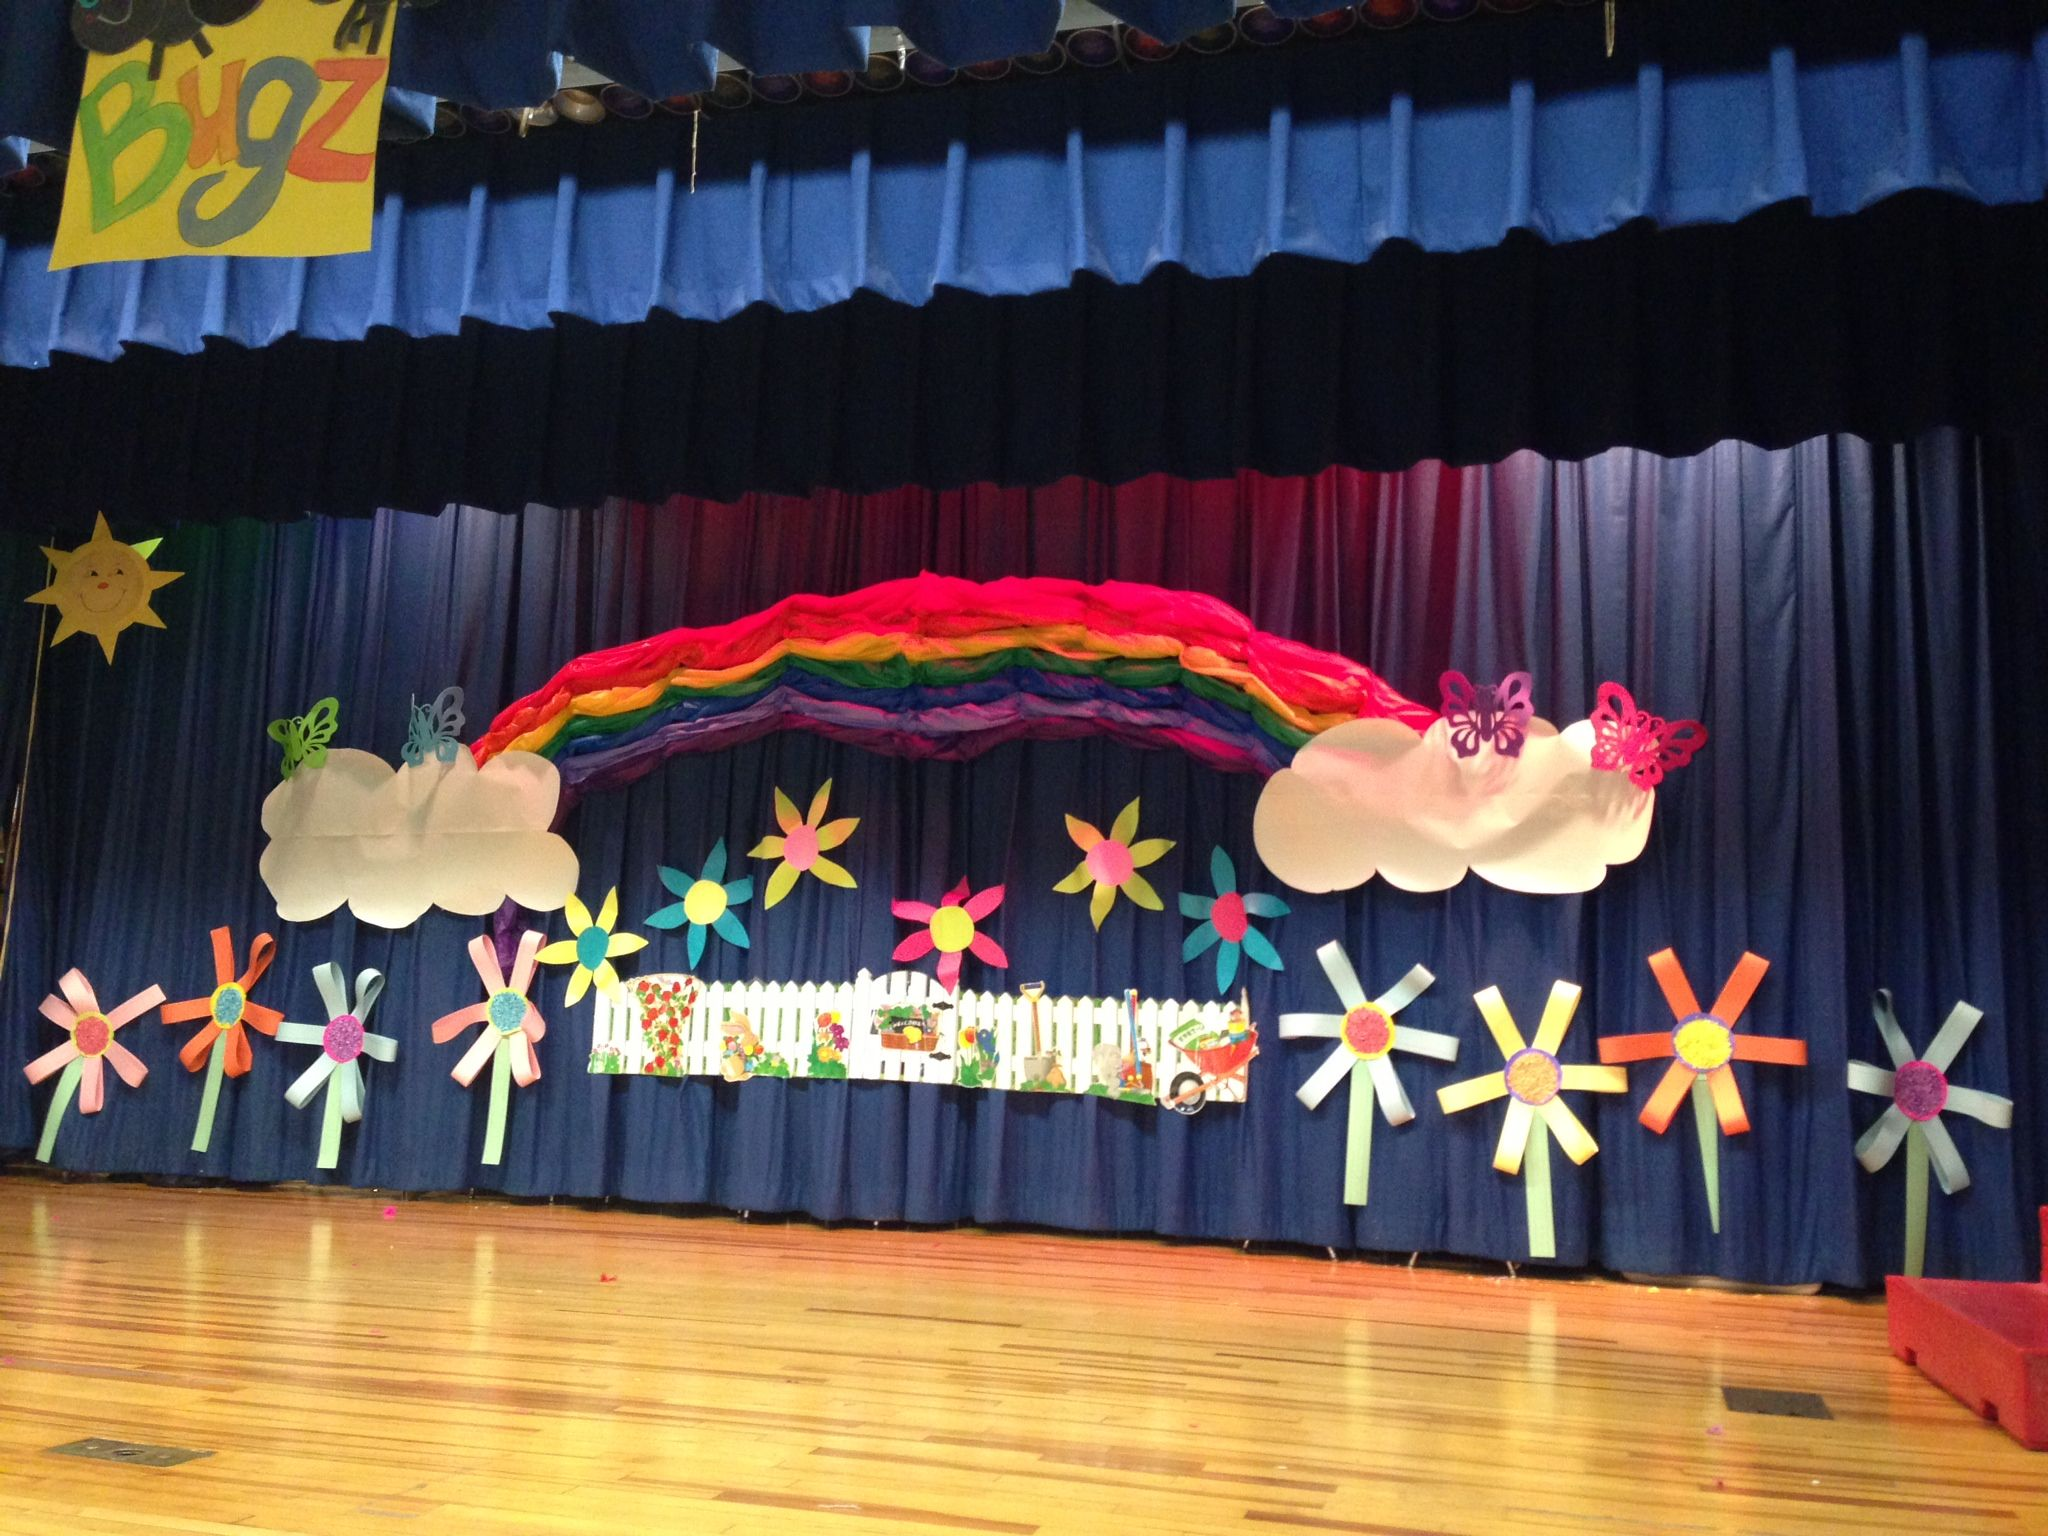 Our decorated stage for our play school stuff pinterest school preschool graduation and - Kindergarten graduation decorations ...